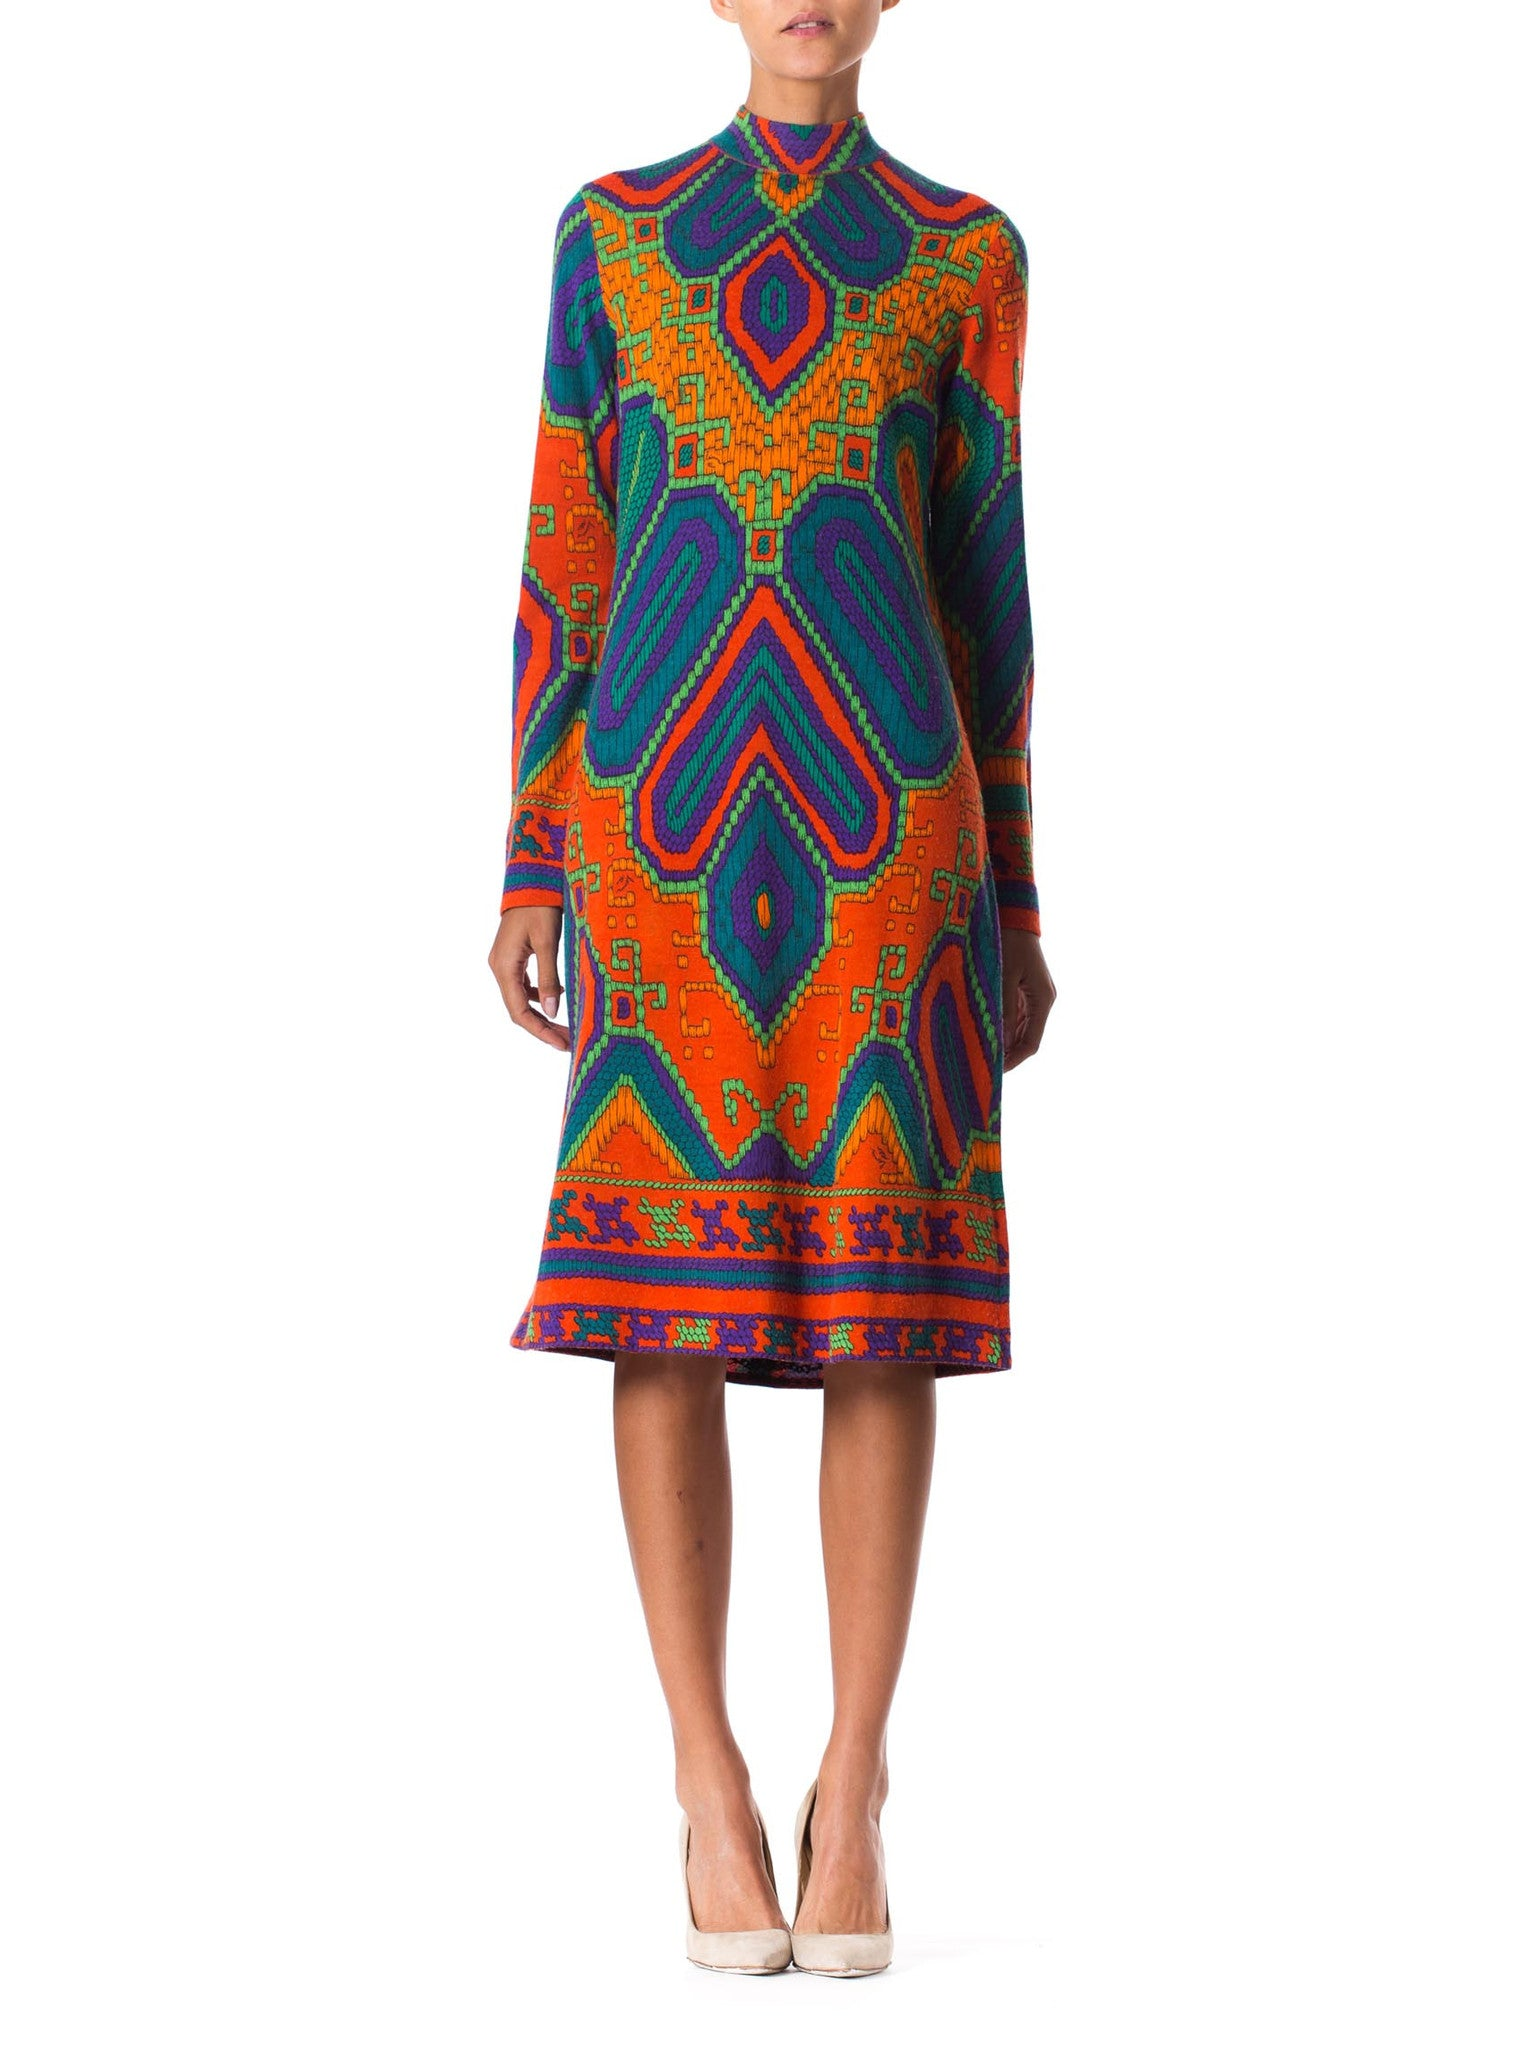 1960S LEONARD Orange & Blue Wool Blend Knit Long Sleeve Moroccan Print Mod Dress